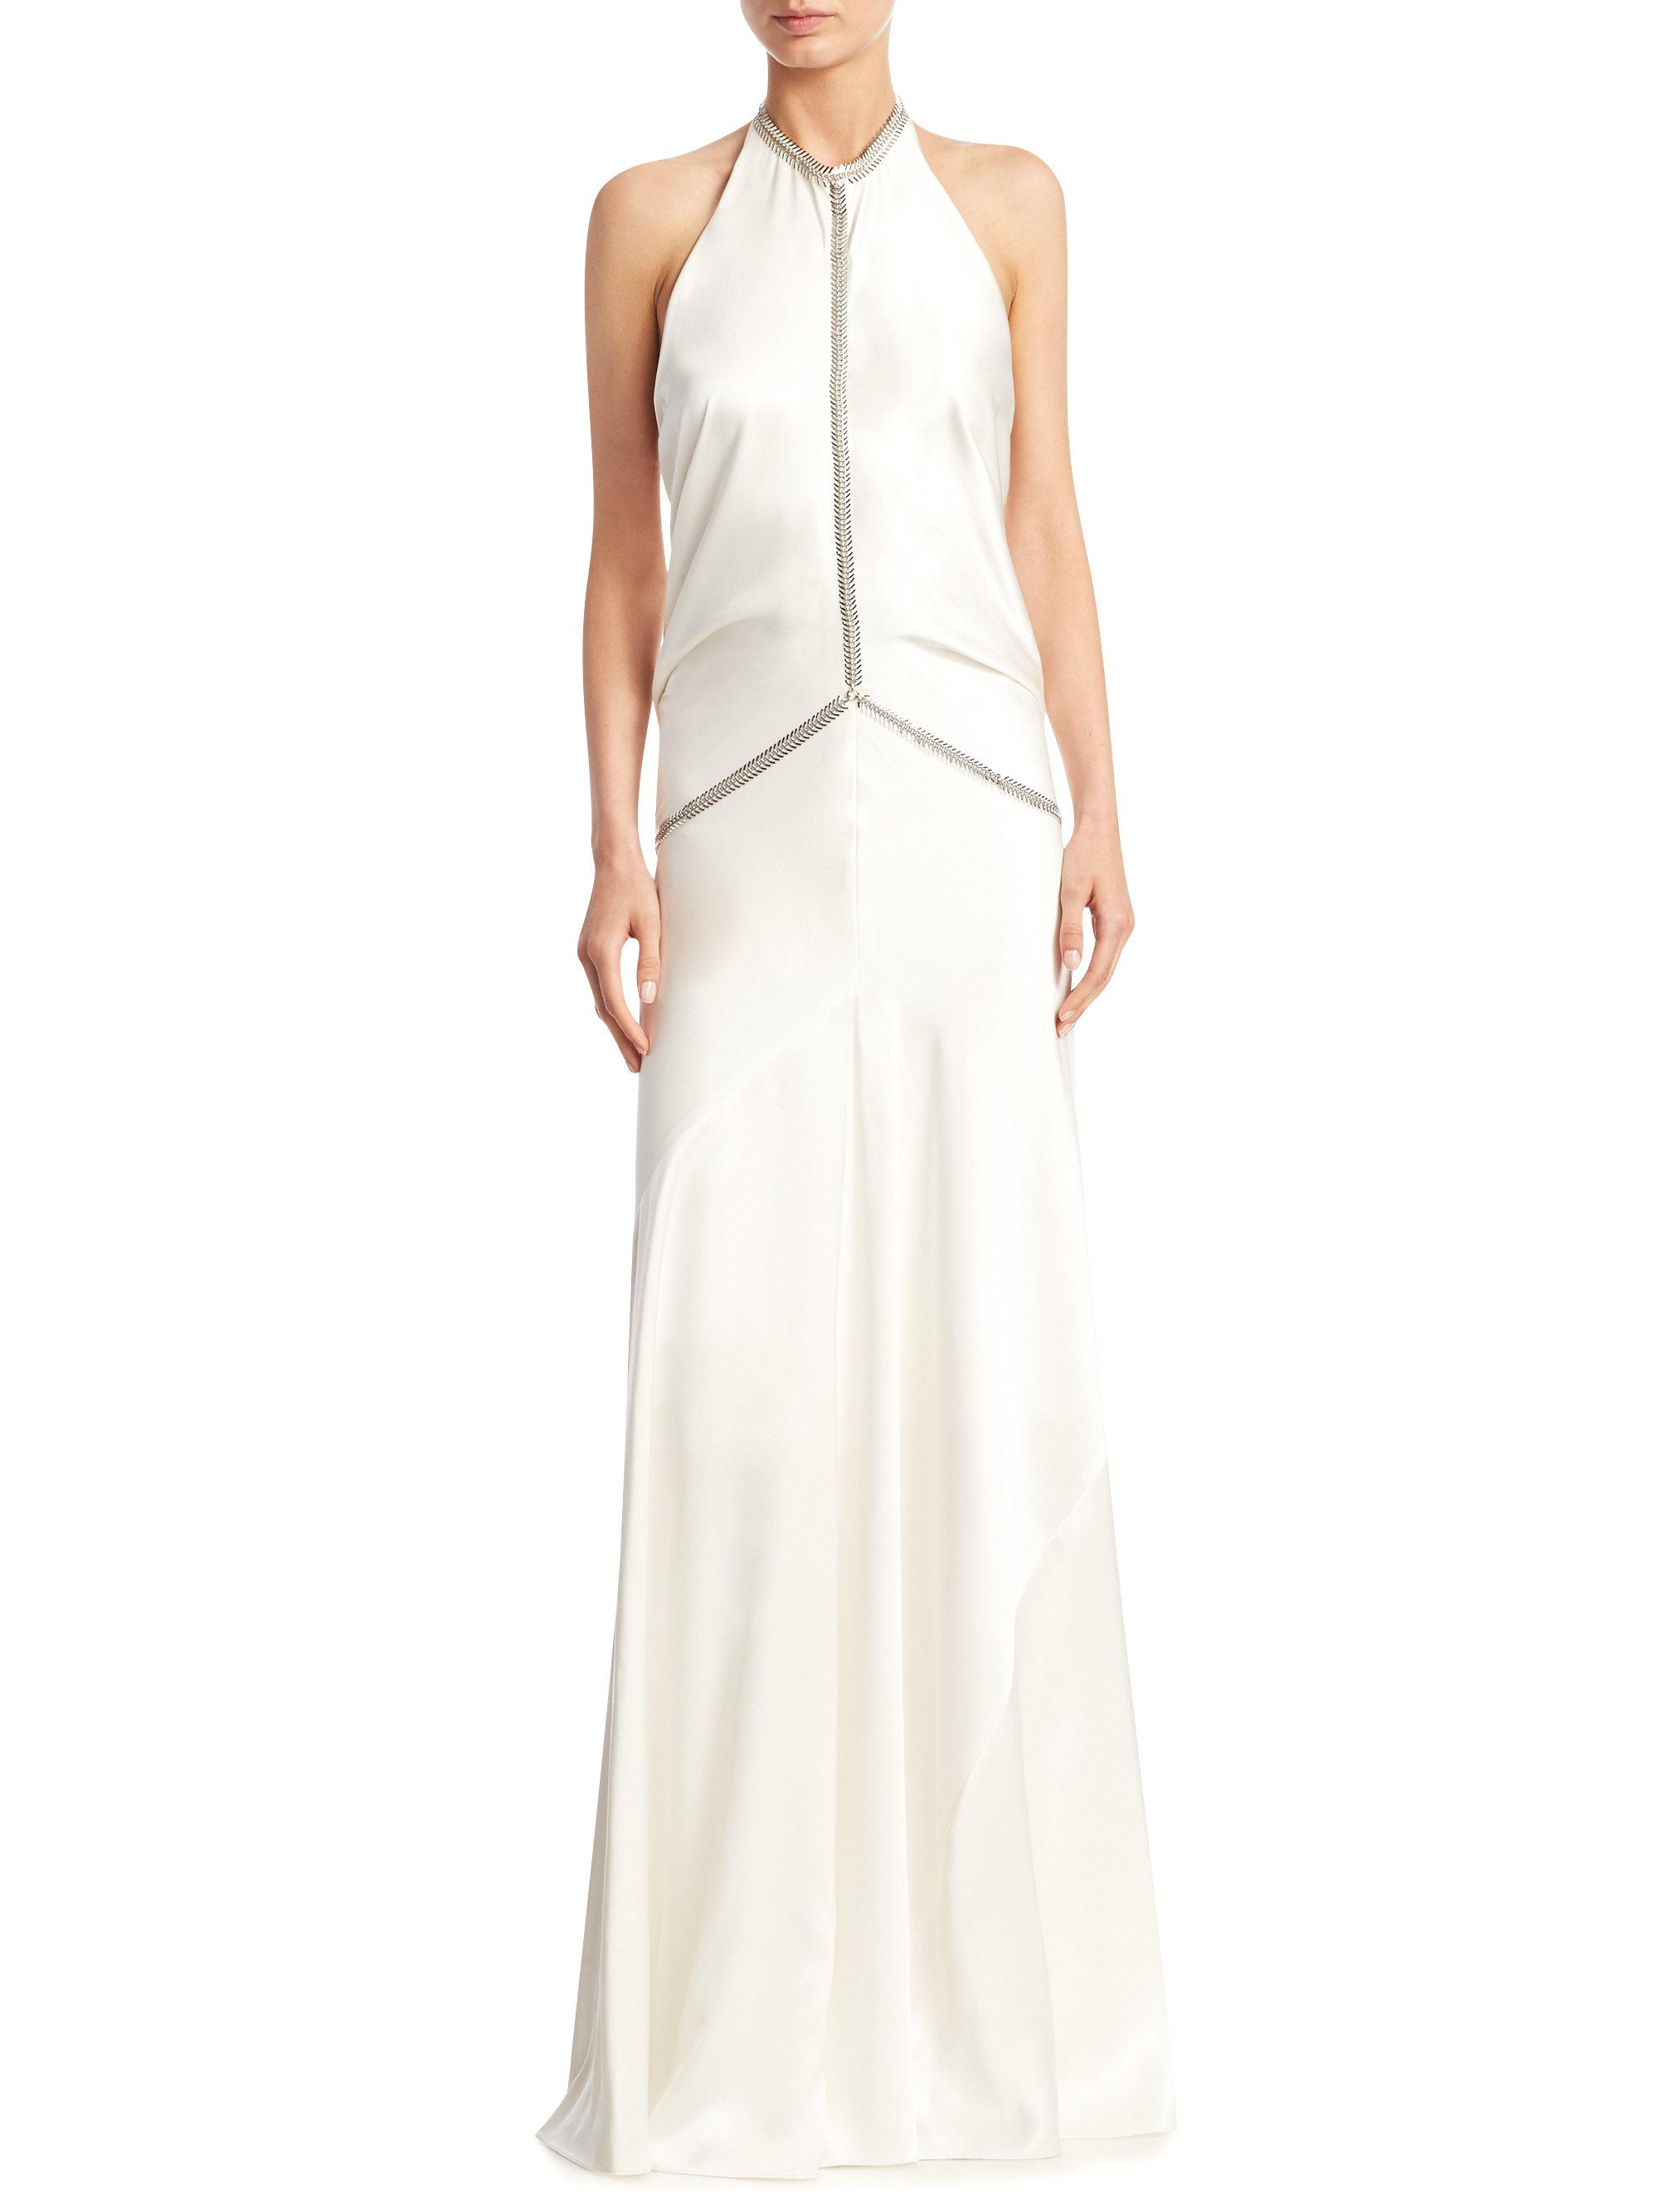 Lyst - Alexander Wang Fishbone Chain Backless Gown in White